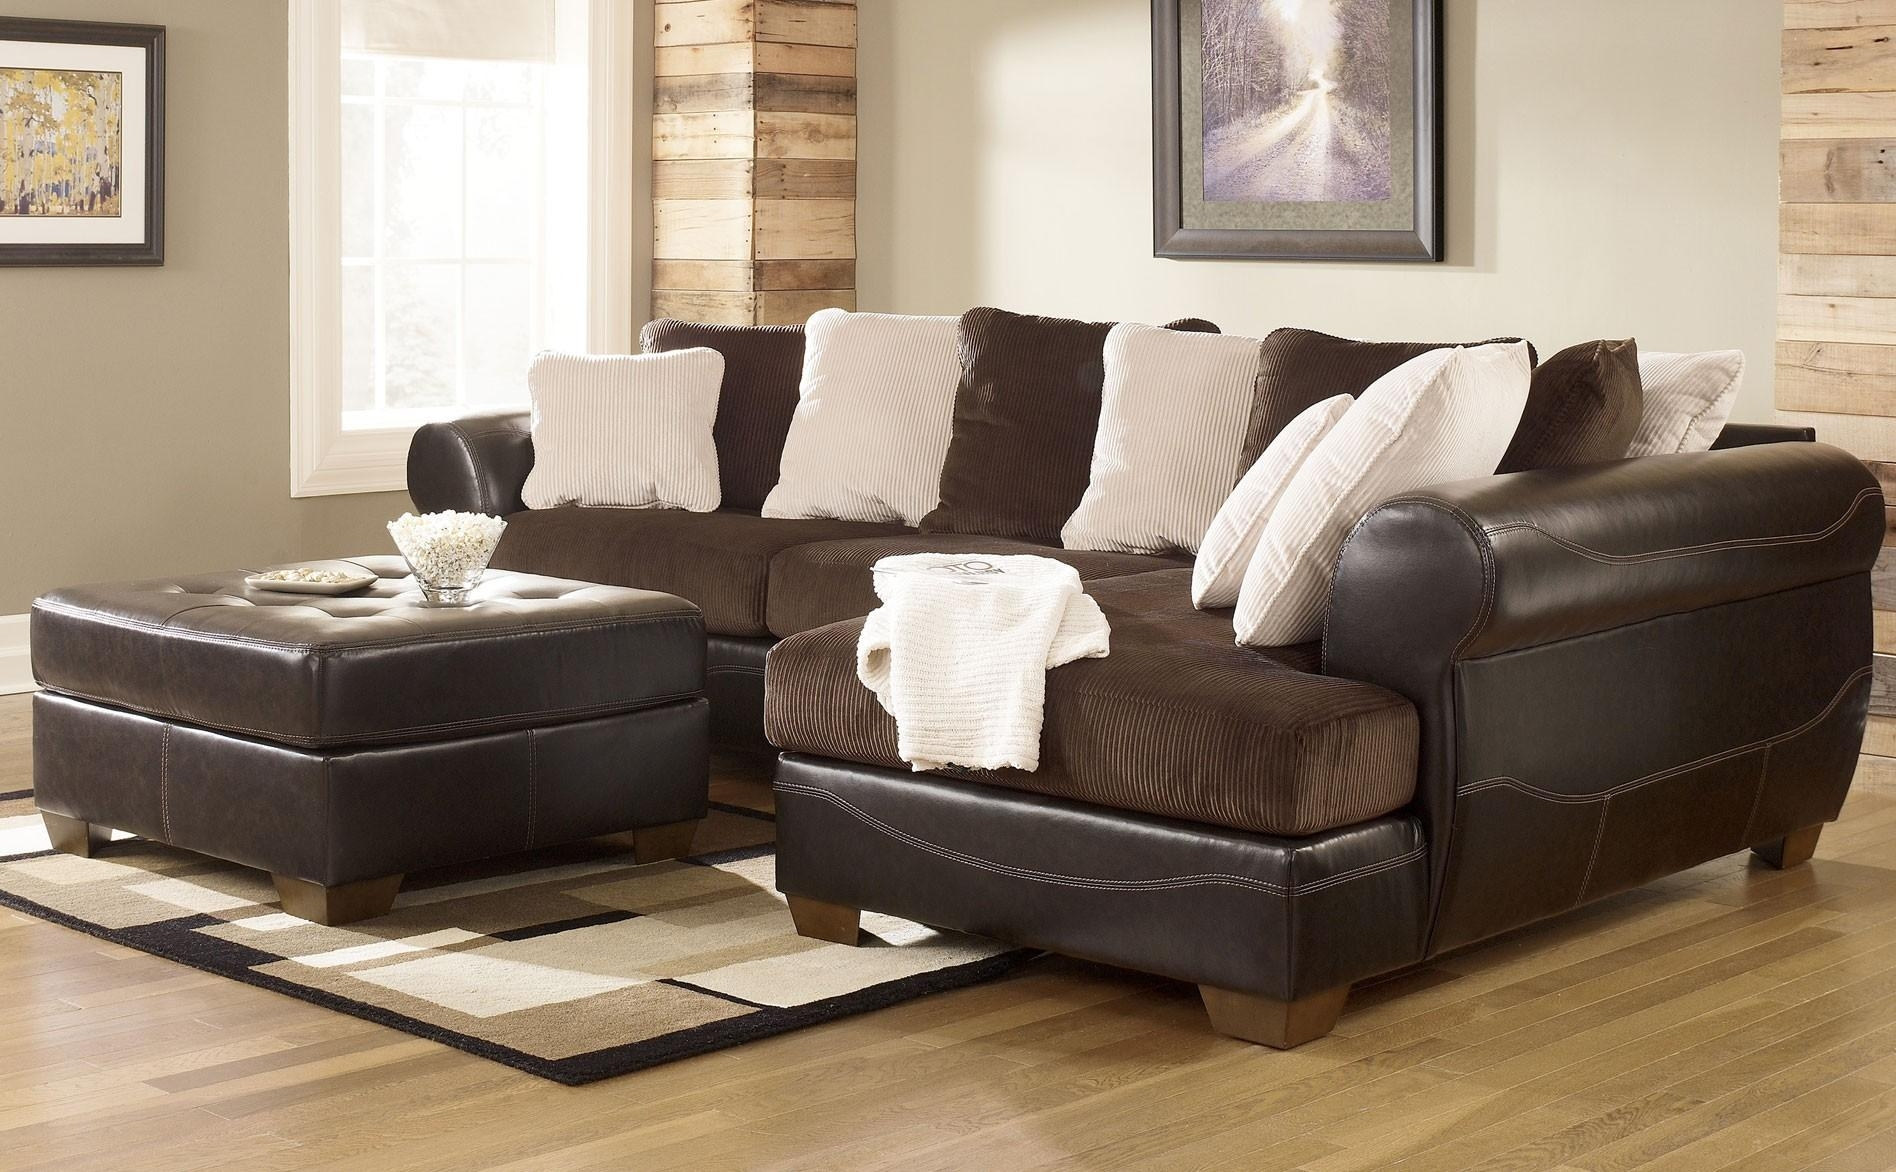 Best Faux Leather Sectional Sofa Ashley 19 For Your Media Sofa Throughout Media Sofa Sectionals (Image 3 of 20)